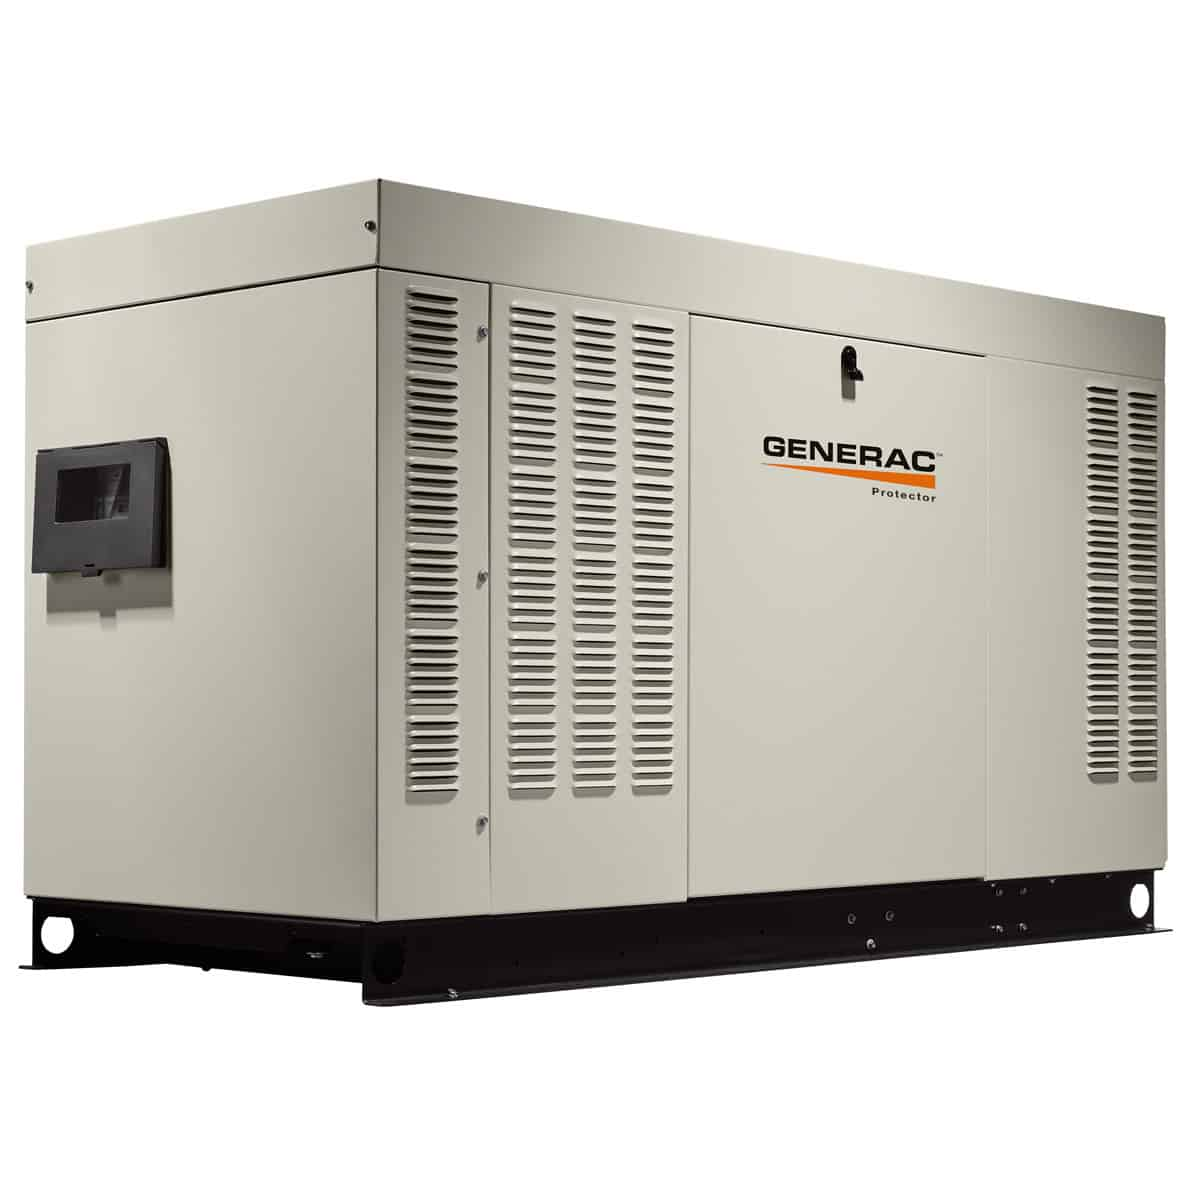 generac protector series 38kw natural gas or propane standby generac protector series 38kw natural gas or propane standby generator 3 phase 240v rg03824j norwall powersystems